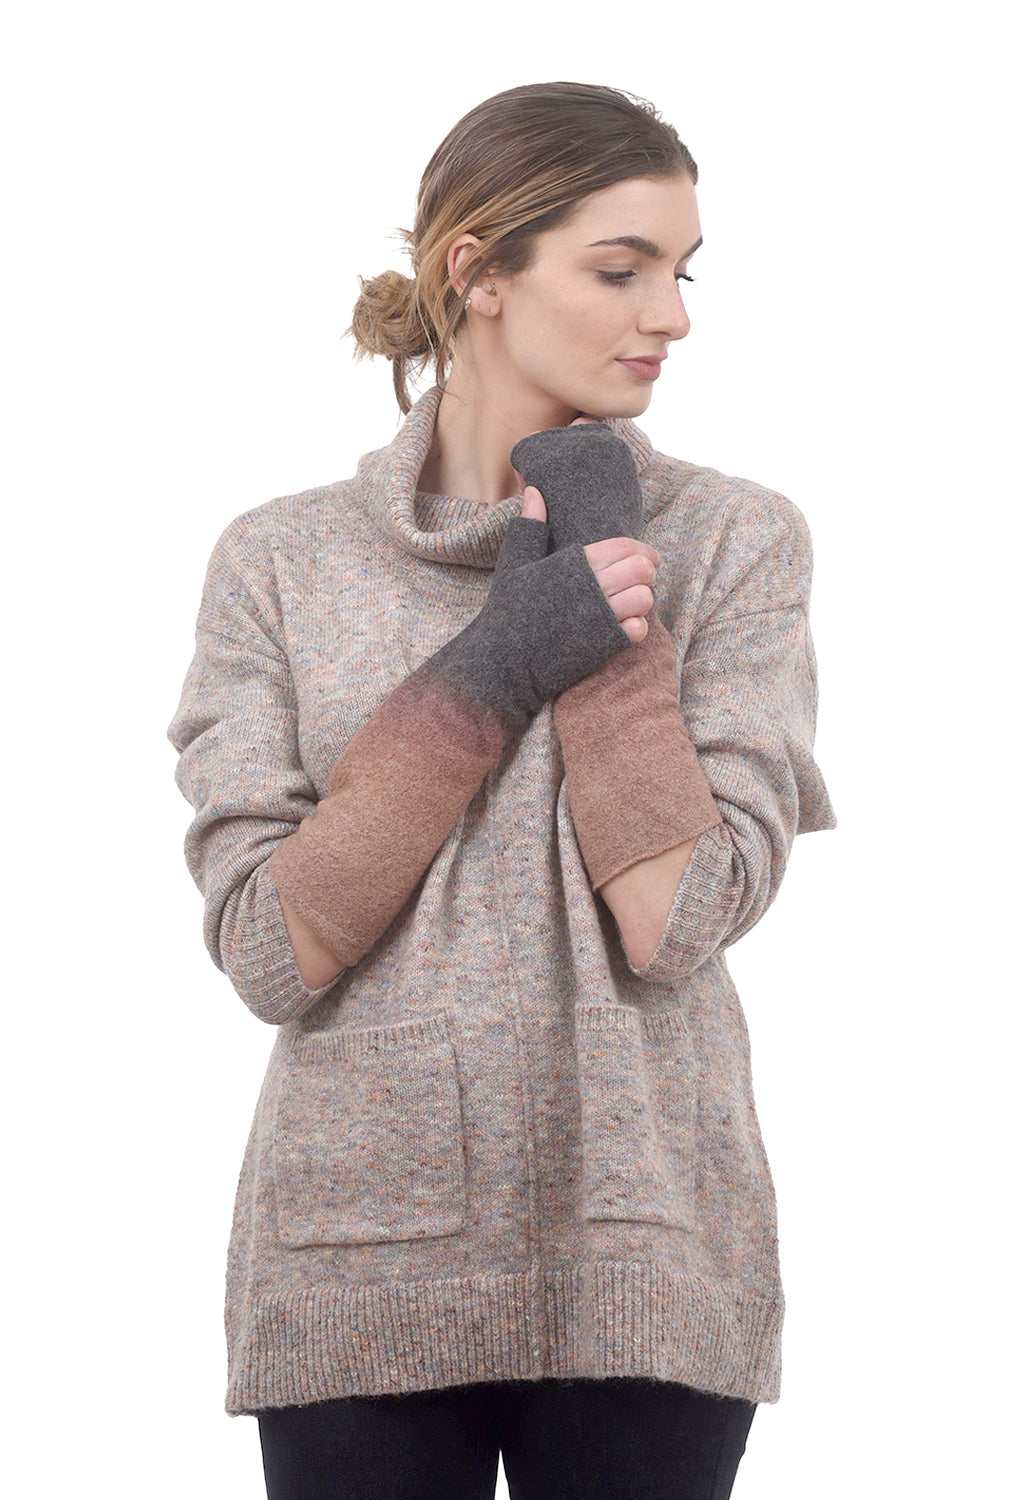 Arae Wool Gradient Handwarmers, Stone One Size Stone